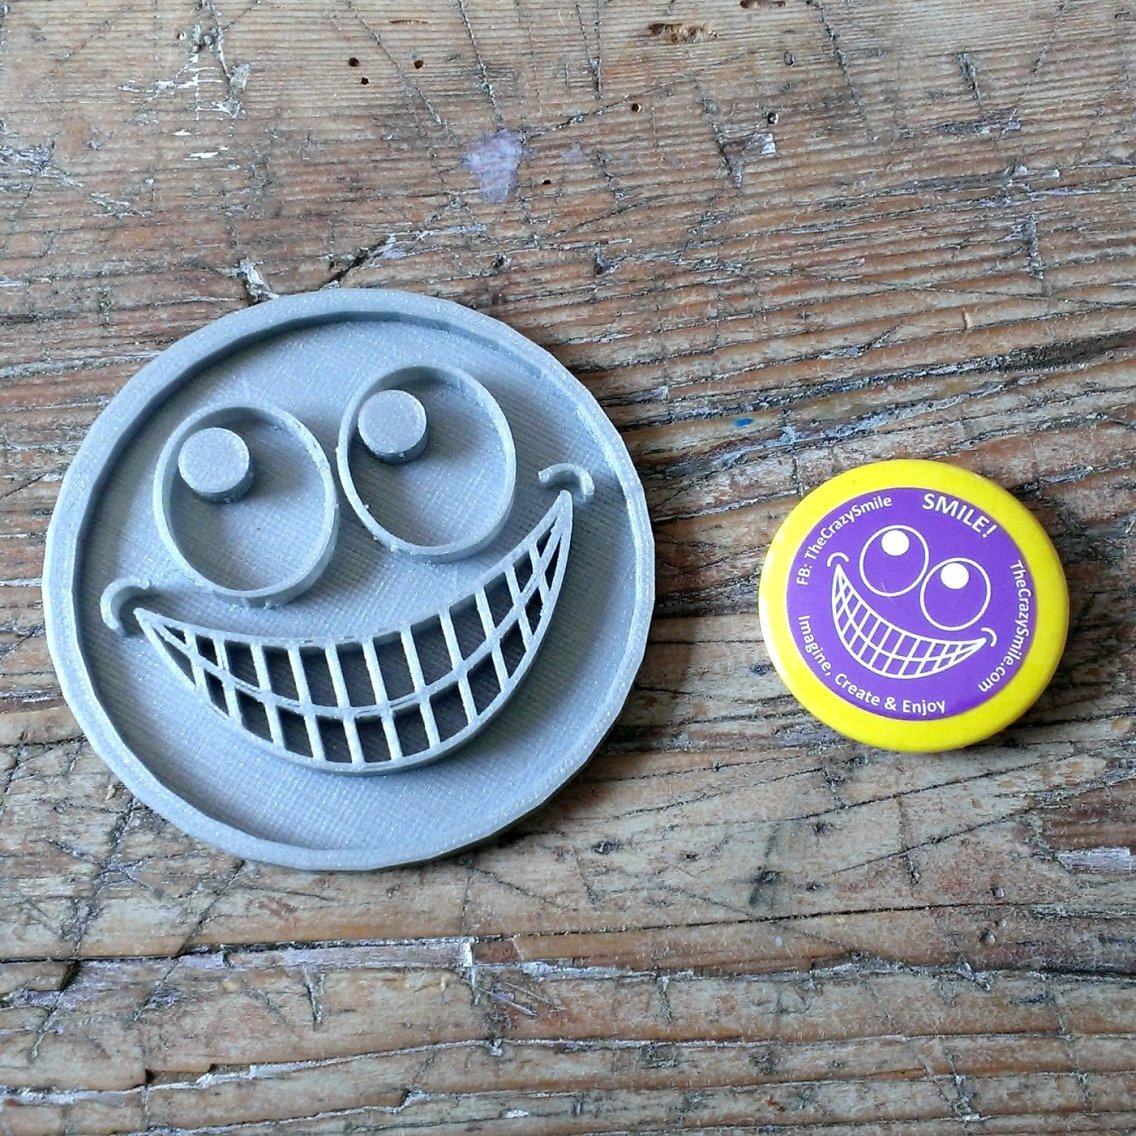 TheCrazySmile button and 3D printed